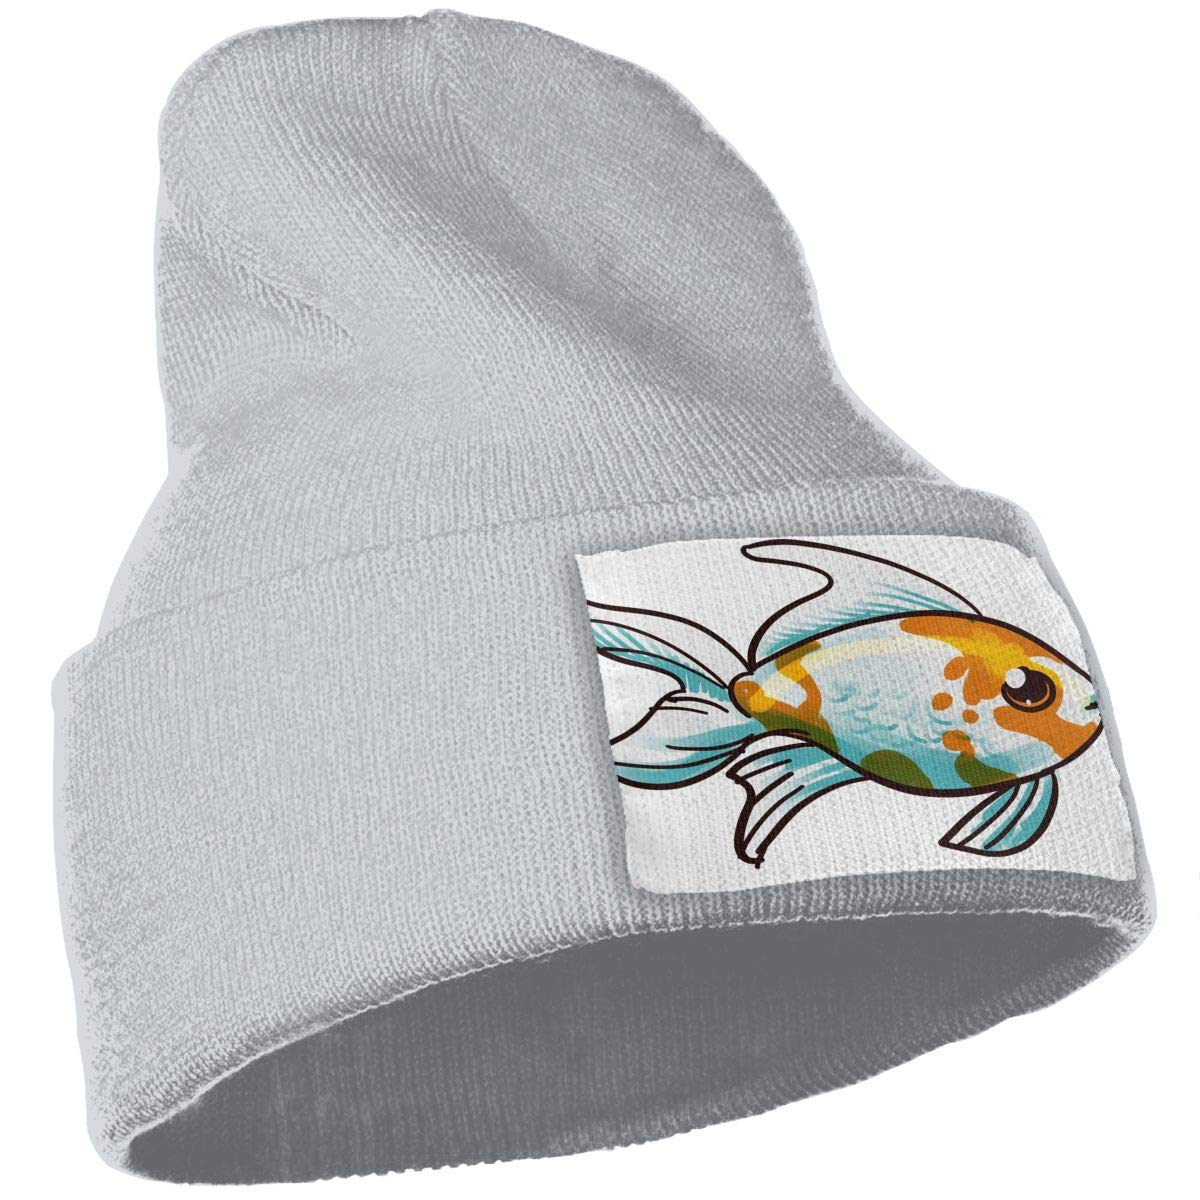 QZqDQ Comet Goldfish Unisex Fashion Knitted Hat Luxury Hip-Hop Cap